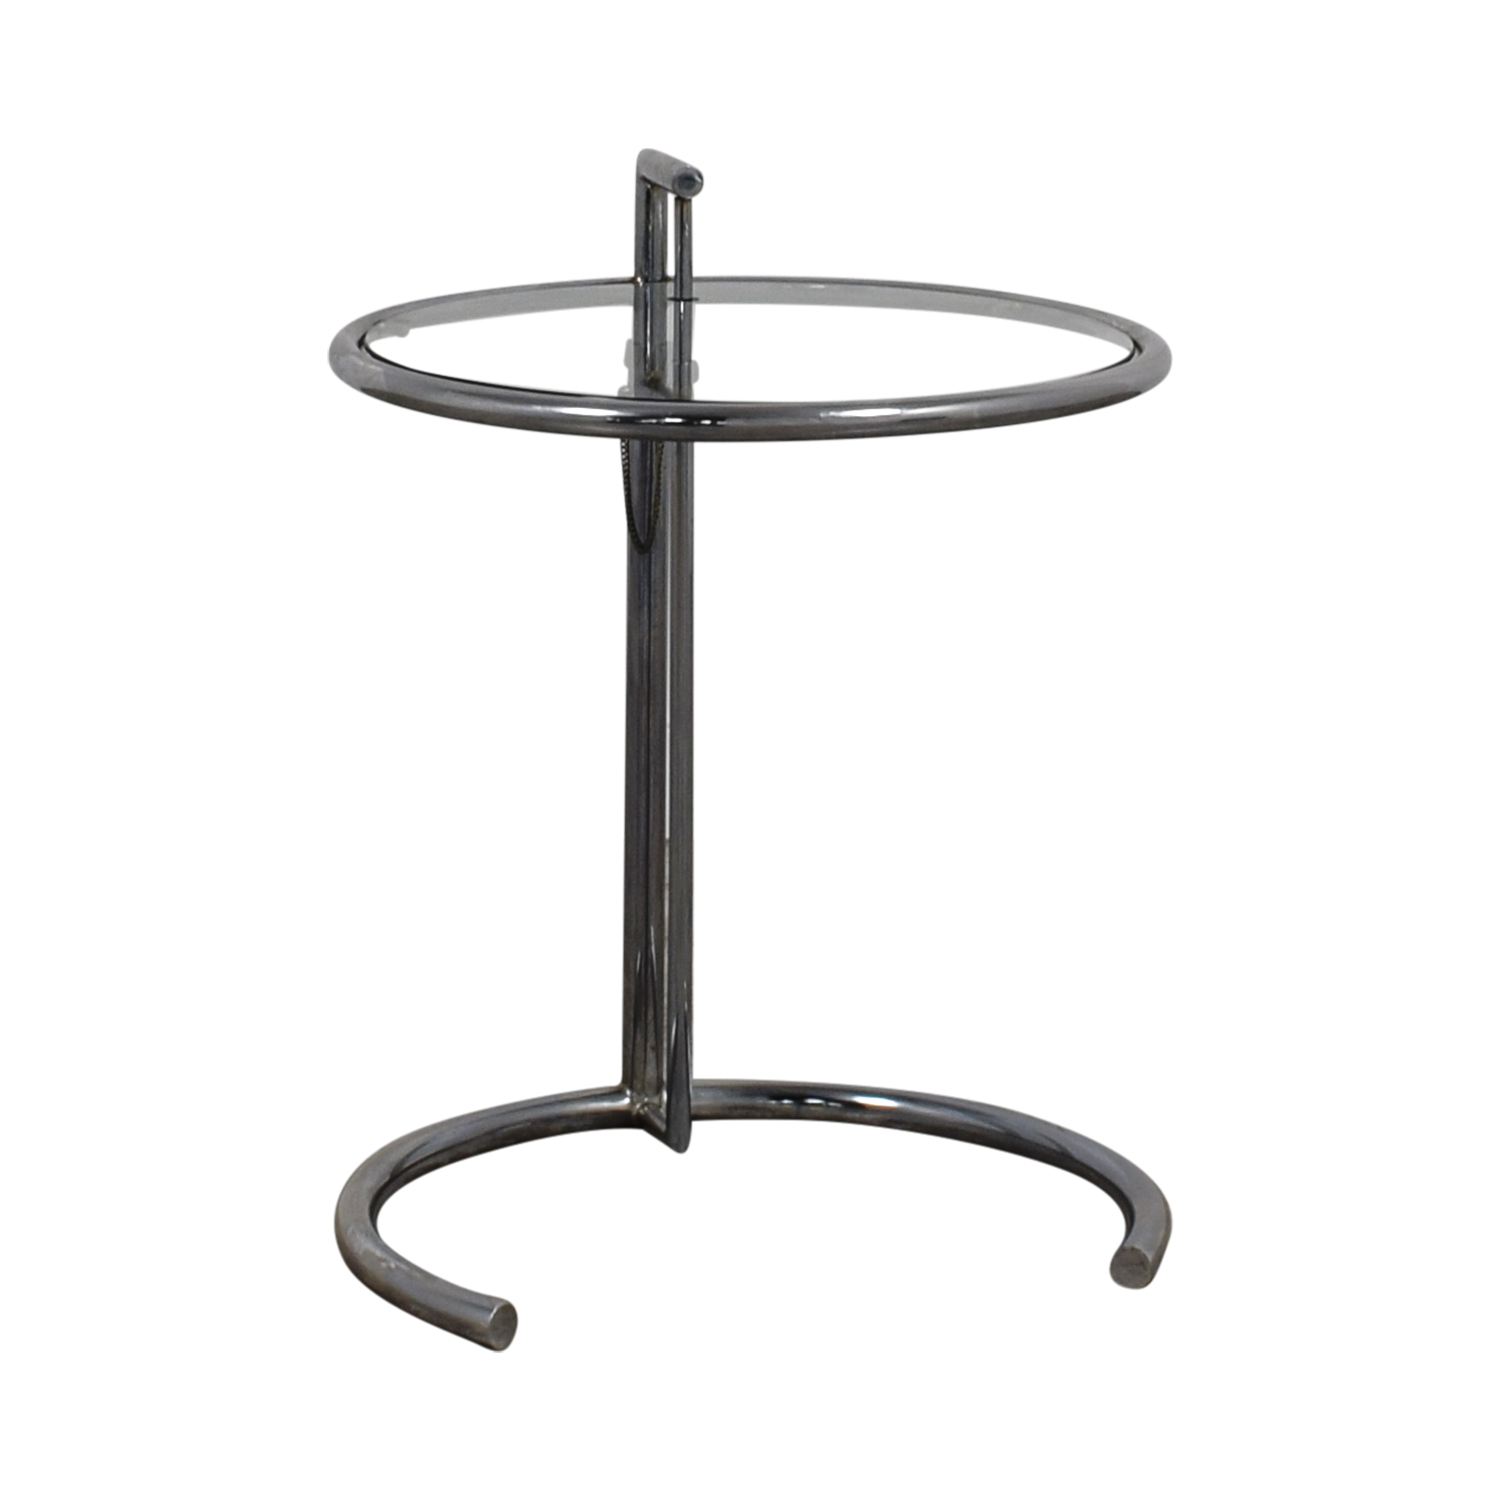 Eileen Gray Eileen Gray Round Glass and Metal Side Table Chrome